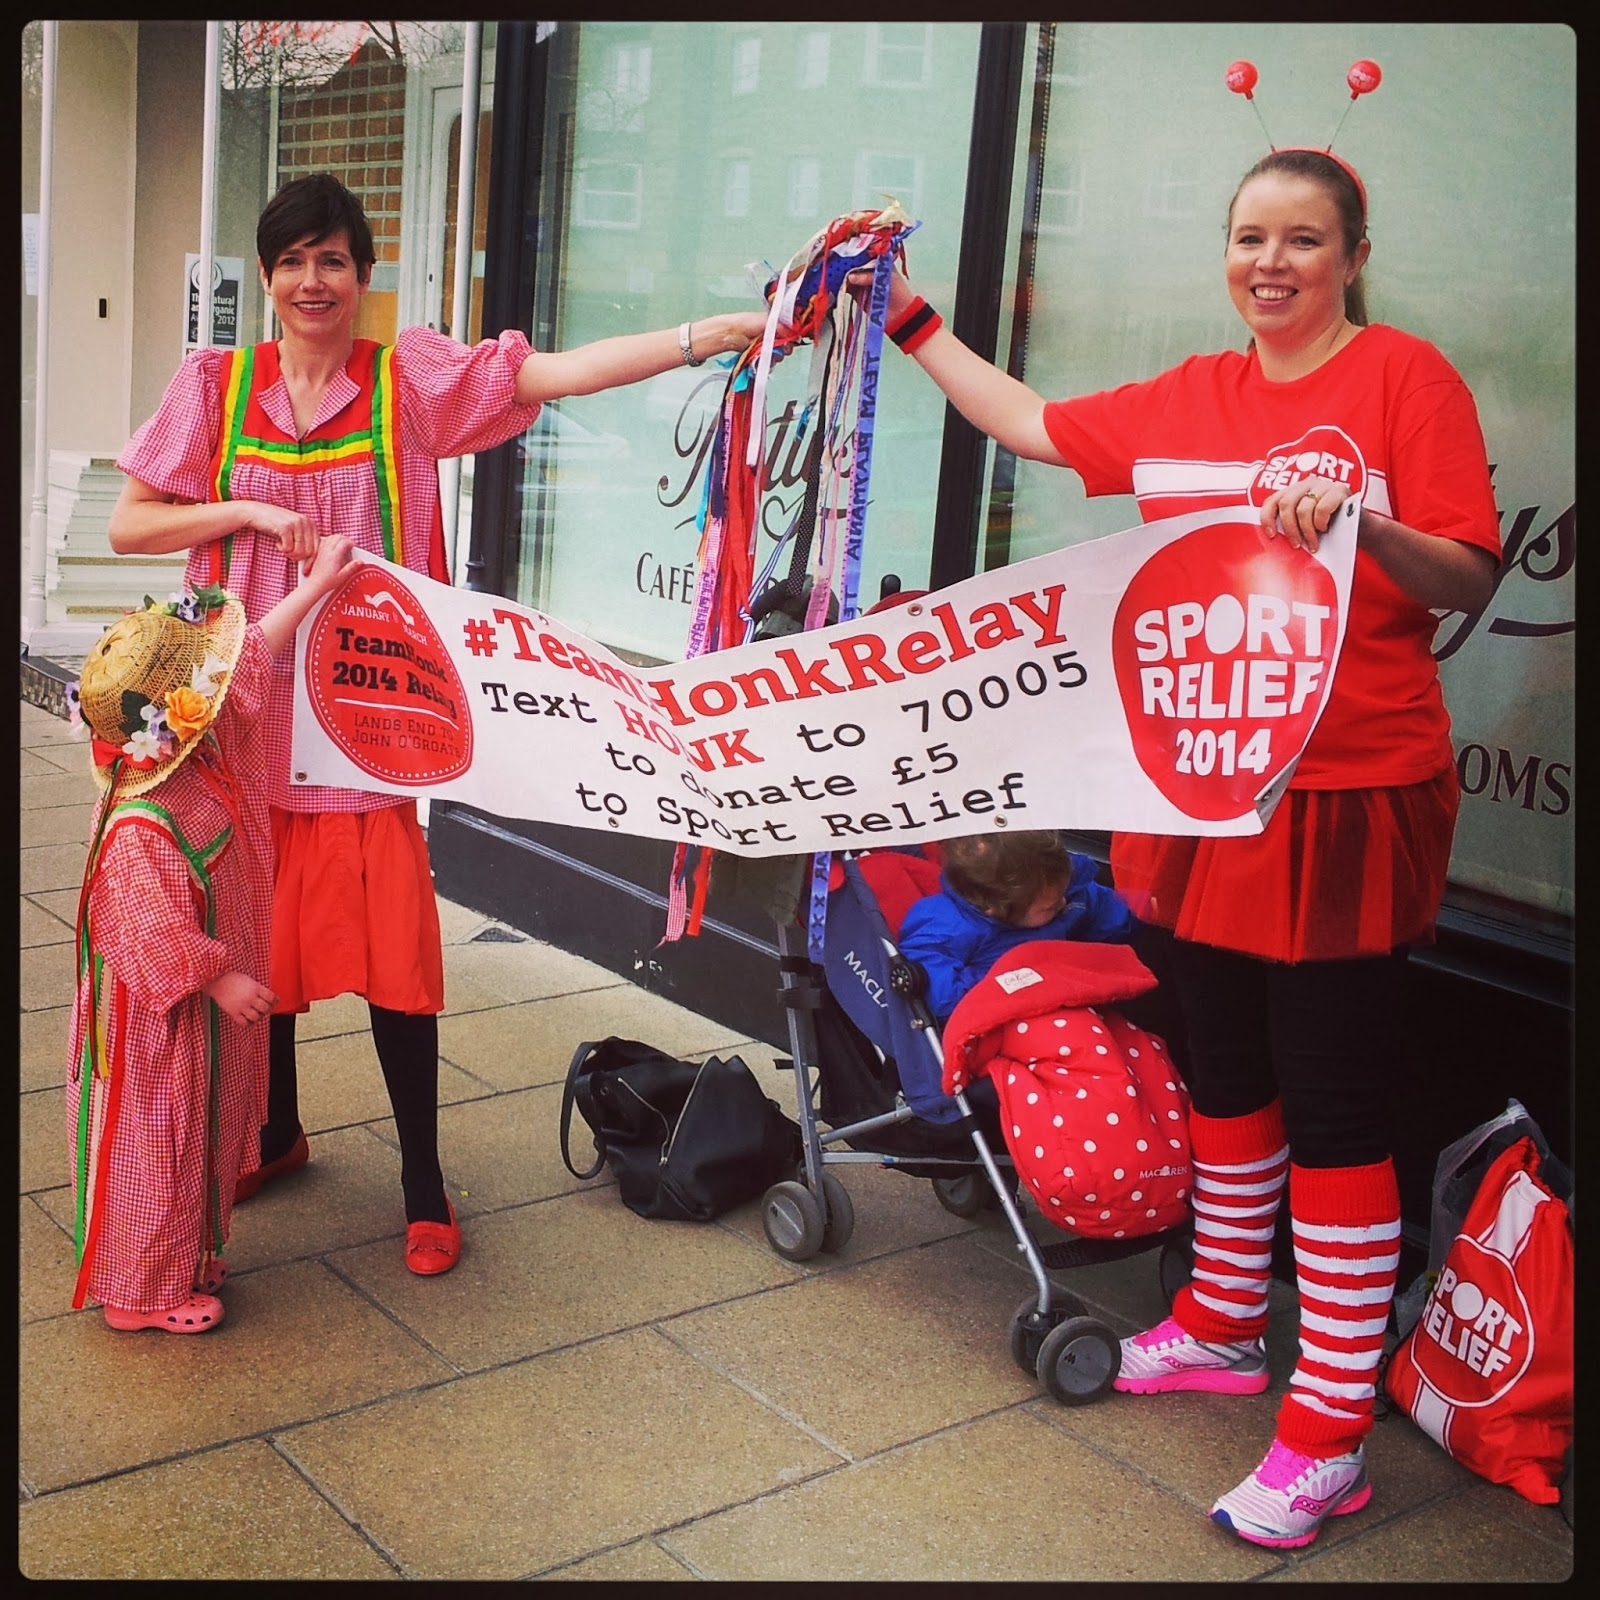 team honk relay ilkley